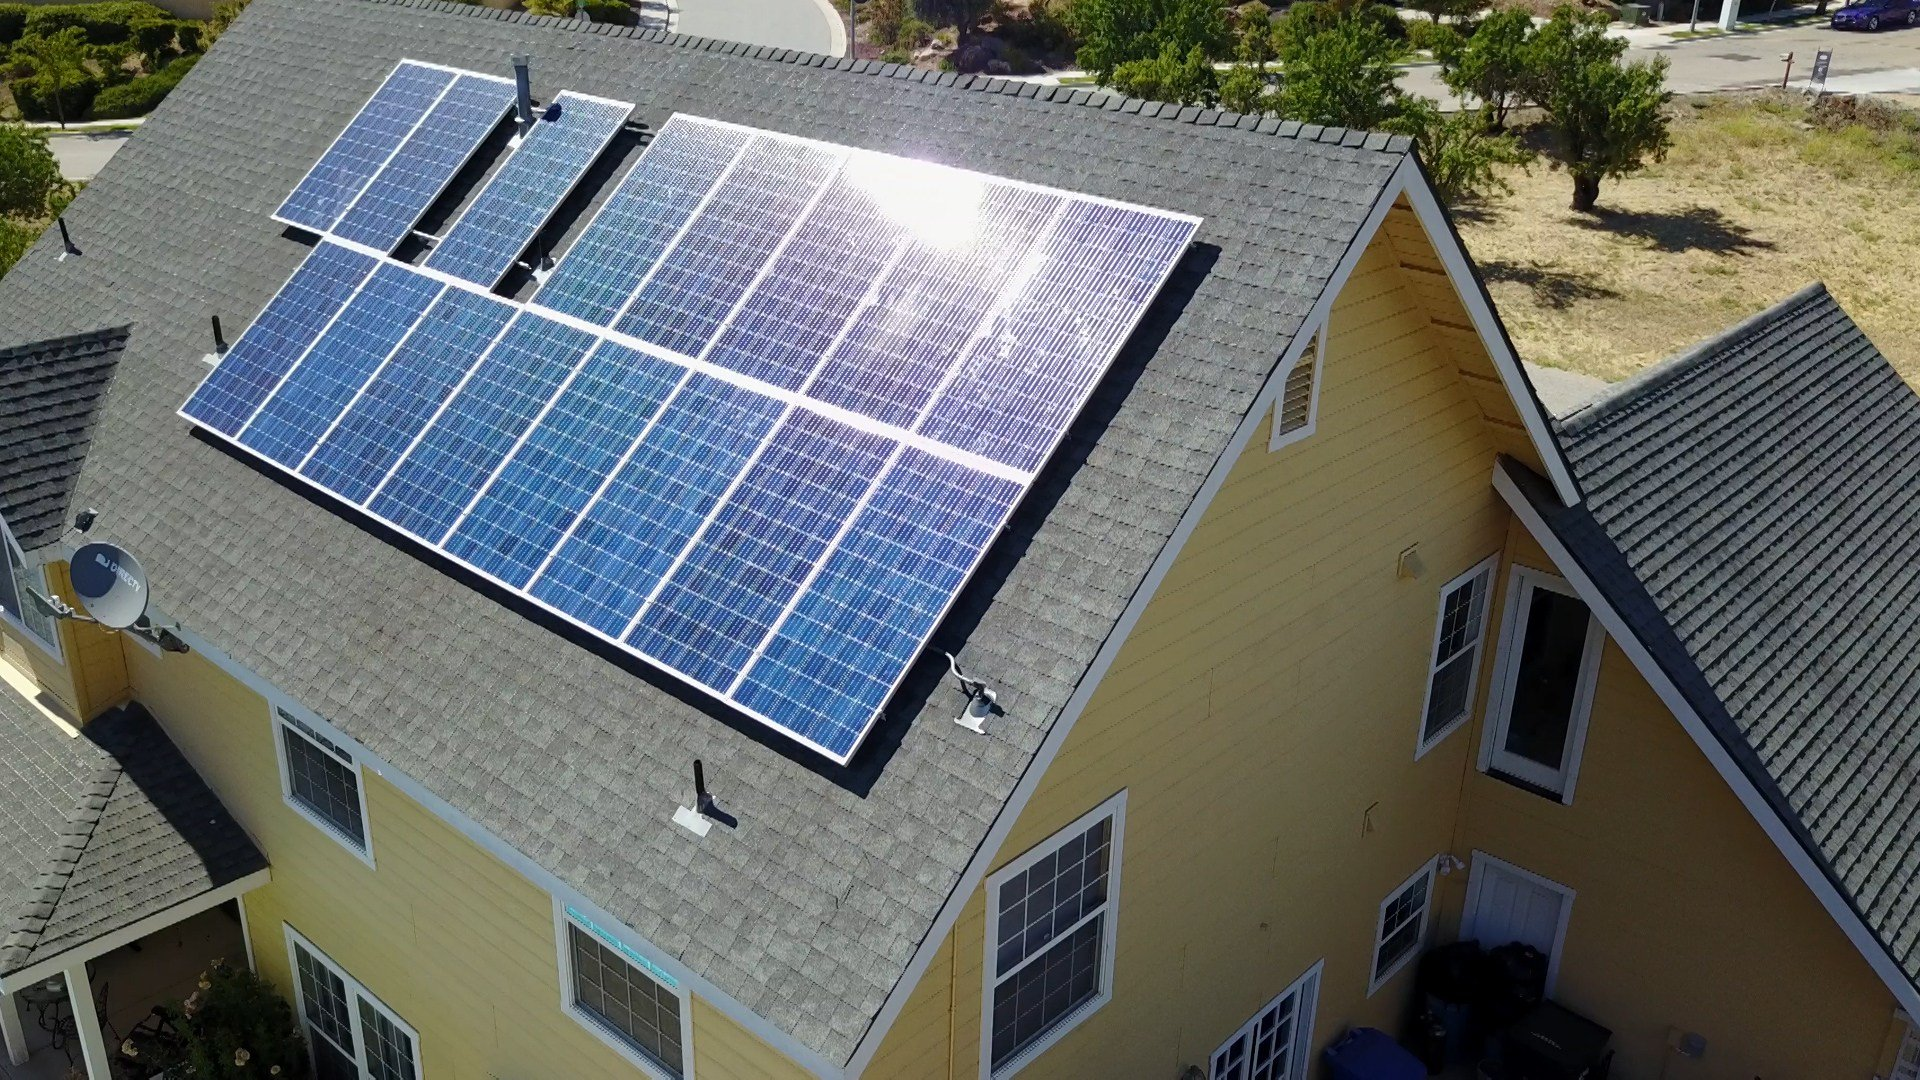 Homebuyers' wish lists rarely include solar